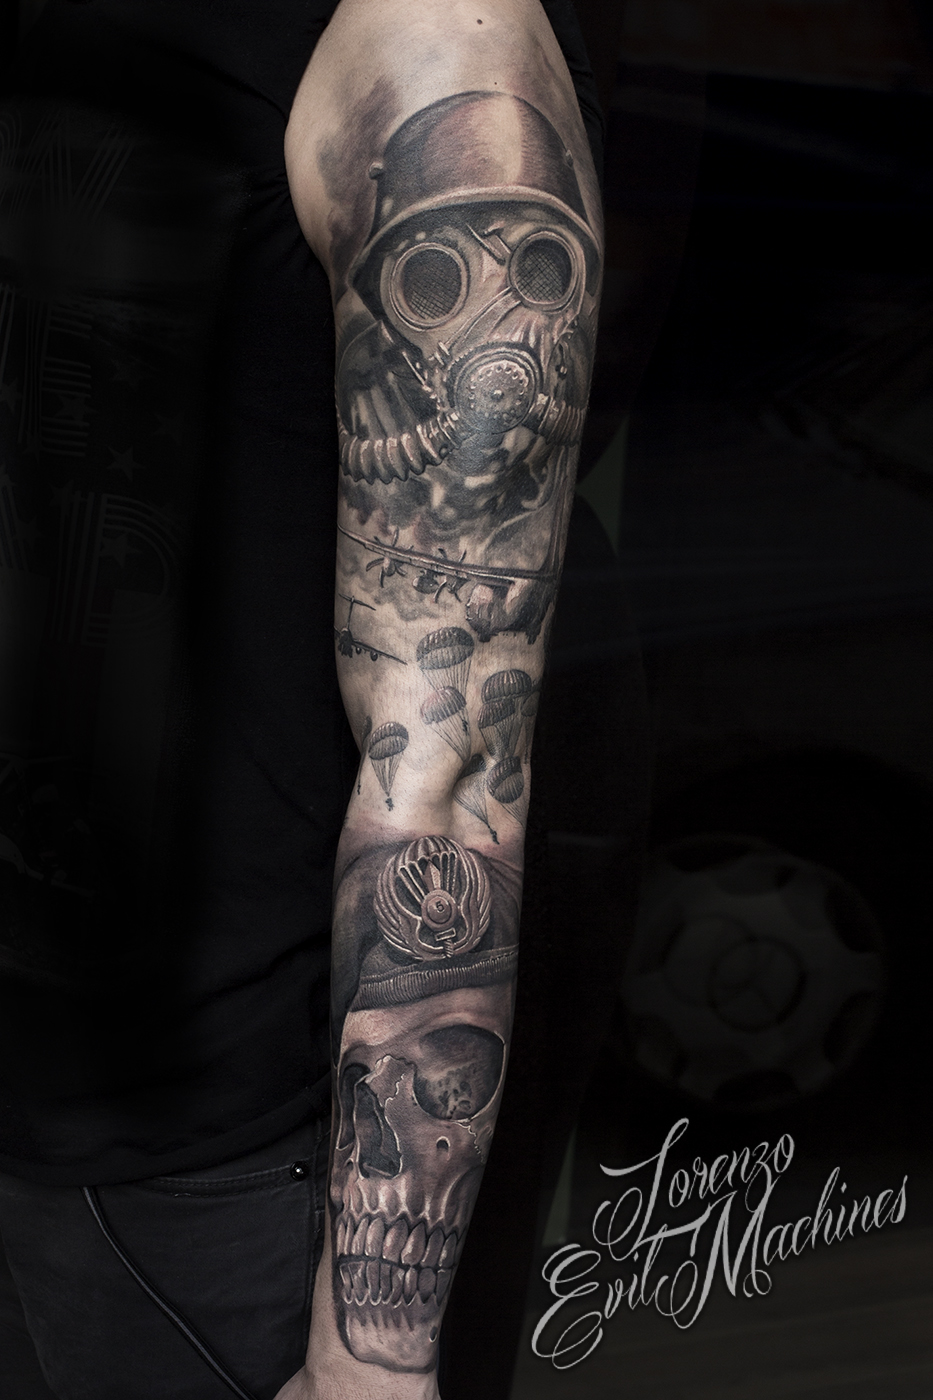 Parà_teschio_antigas_black_and_gray_Lorenzo_Evil_Machines_Tattoo_tatuaggi_realistici_Roma_sito_best_migliore